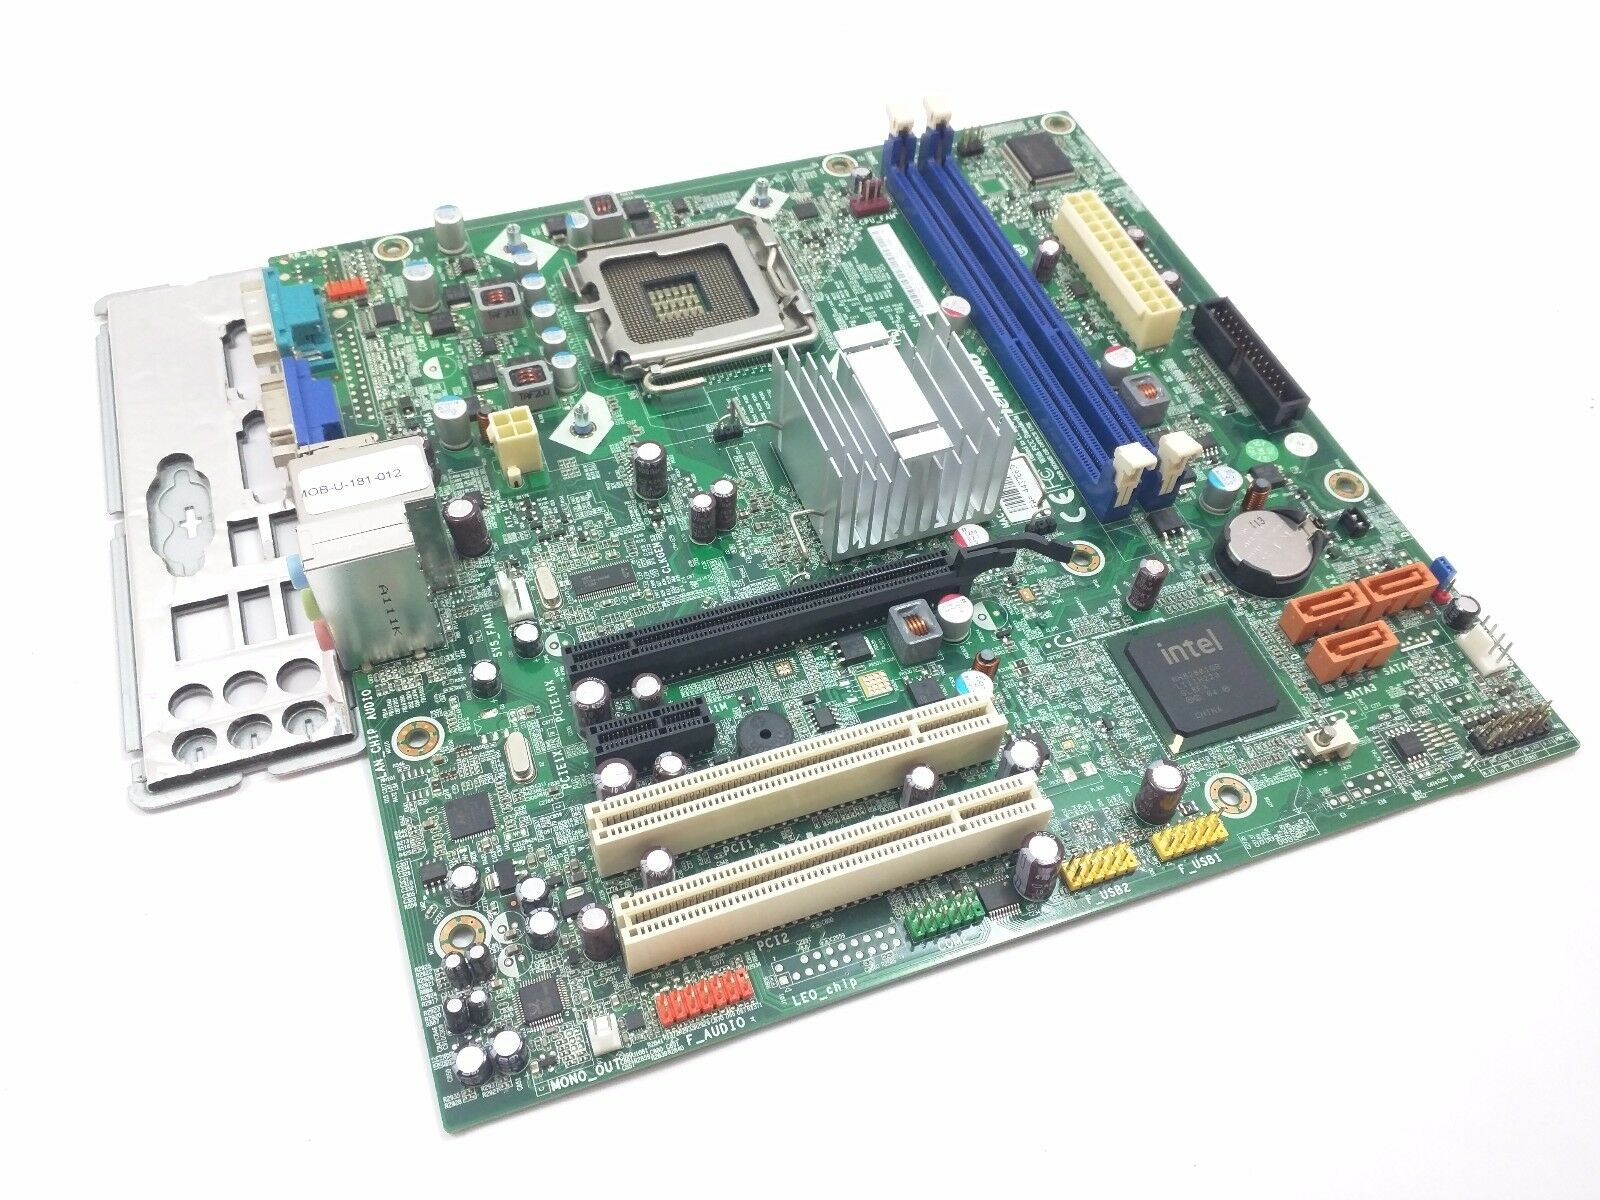 This is a used motherboard